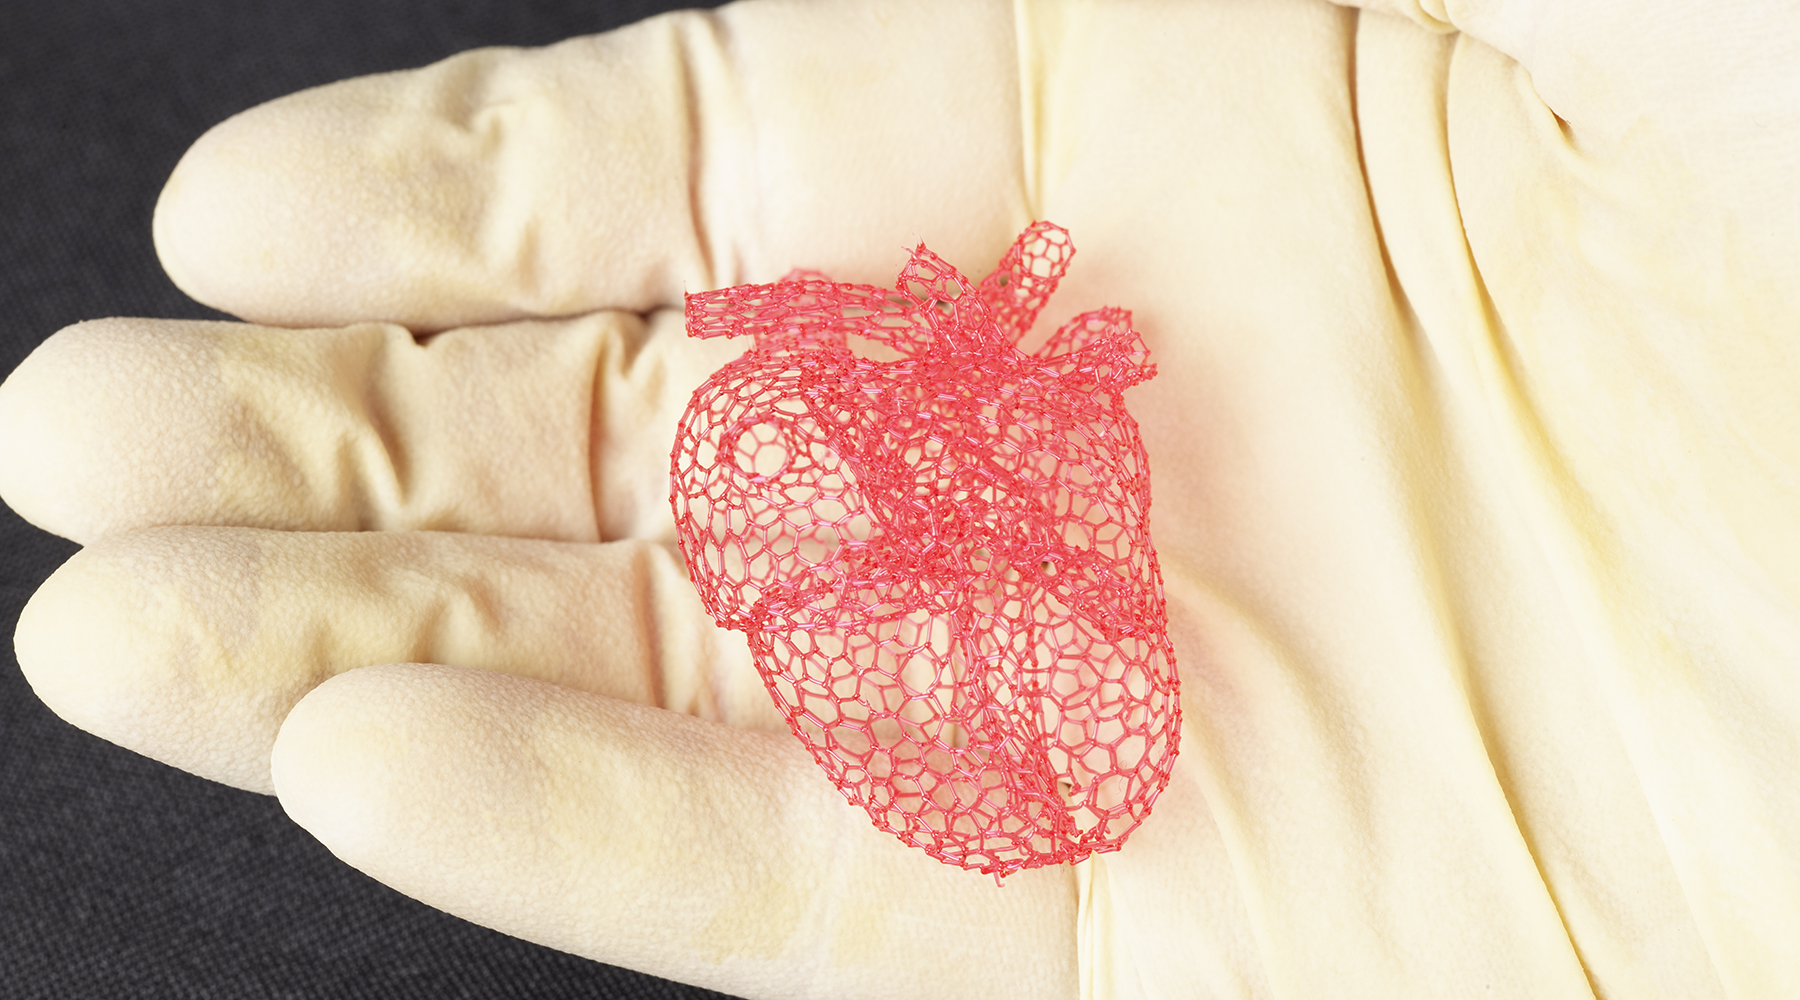 Freeform printing allows the researchers to make intricate structures, such as this model of a heart, that could not be made with traditional layer-by-layer 3-D printing. Photo by Travis Ross, Beckman Institute